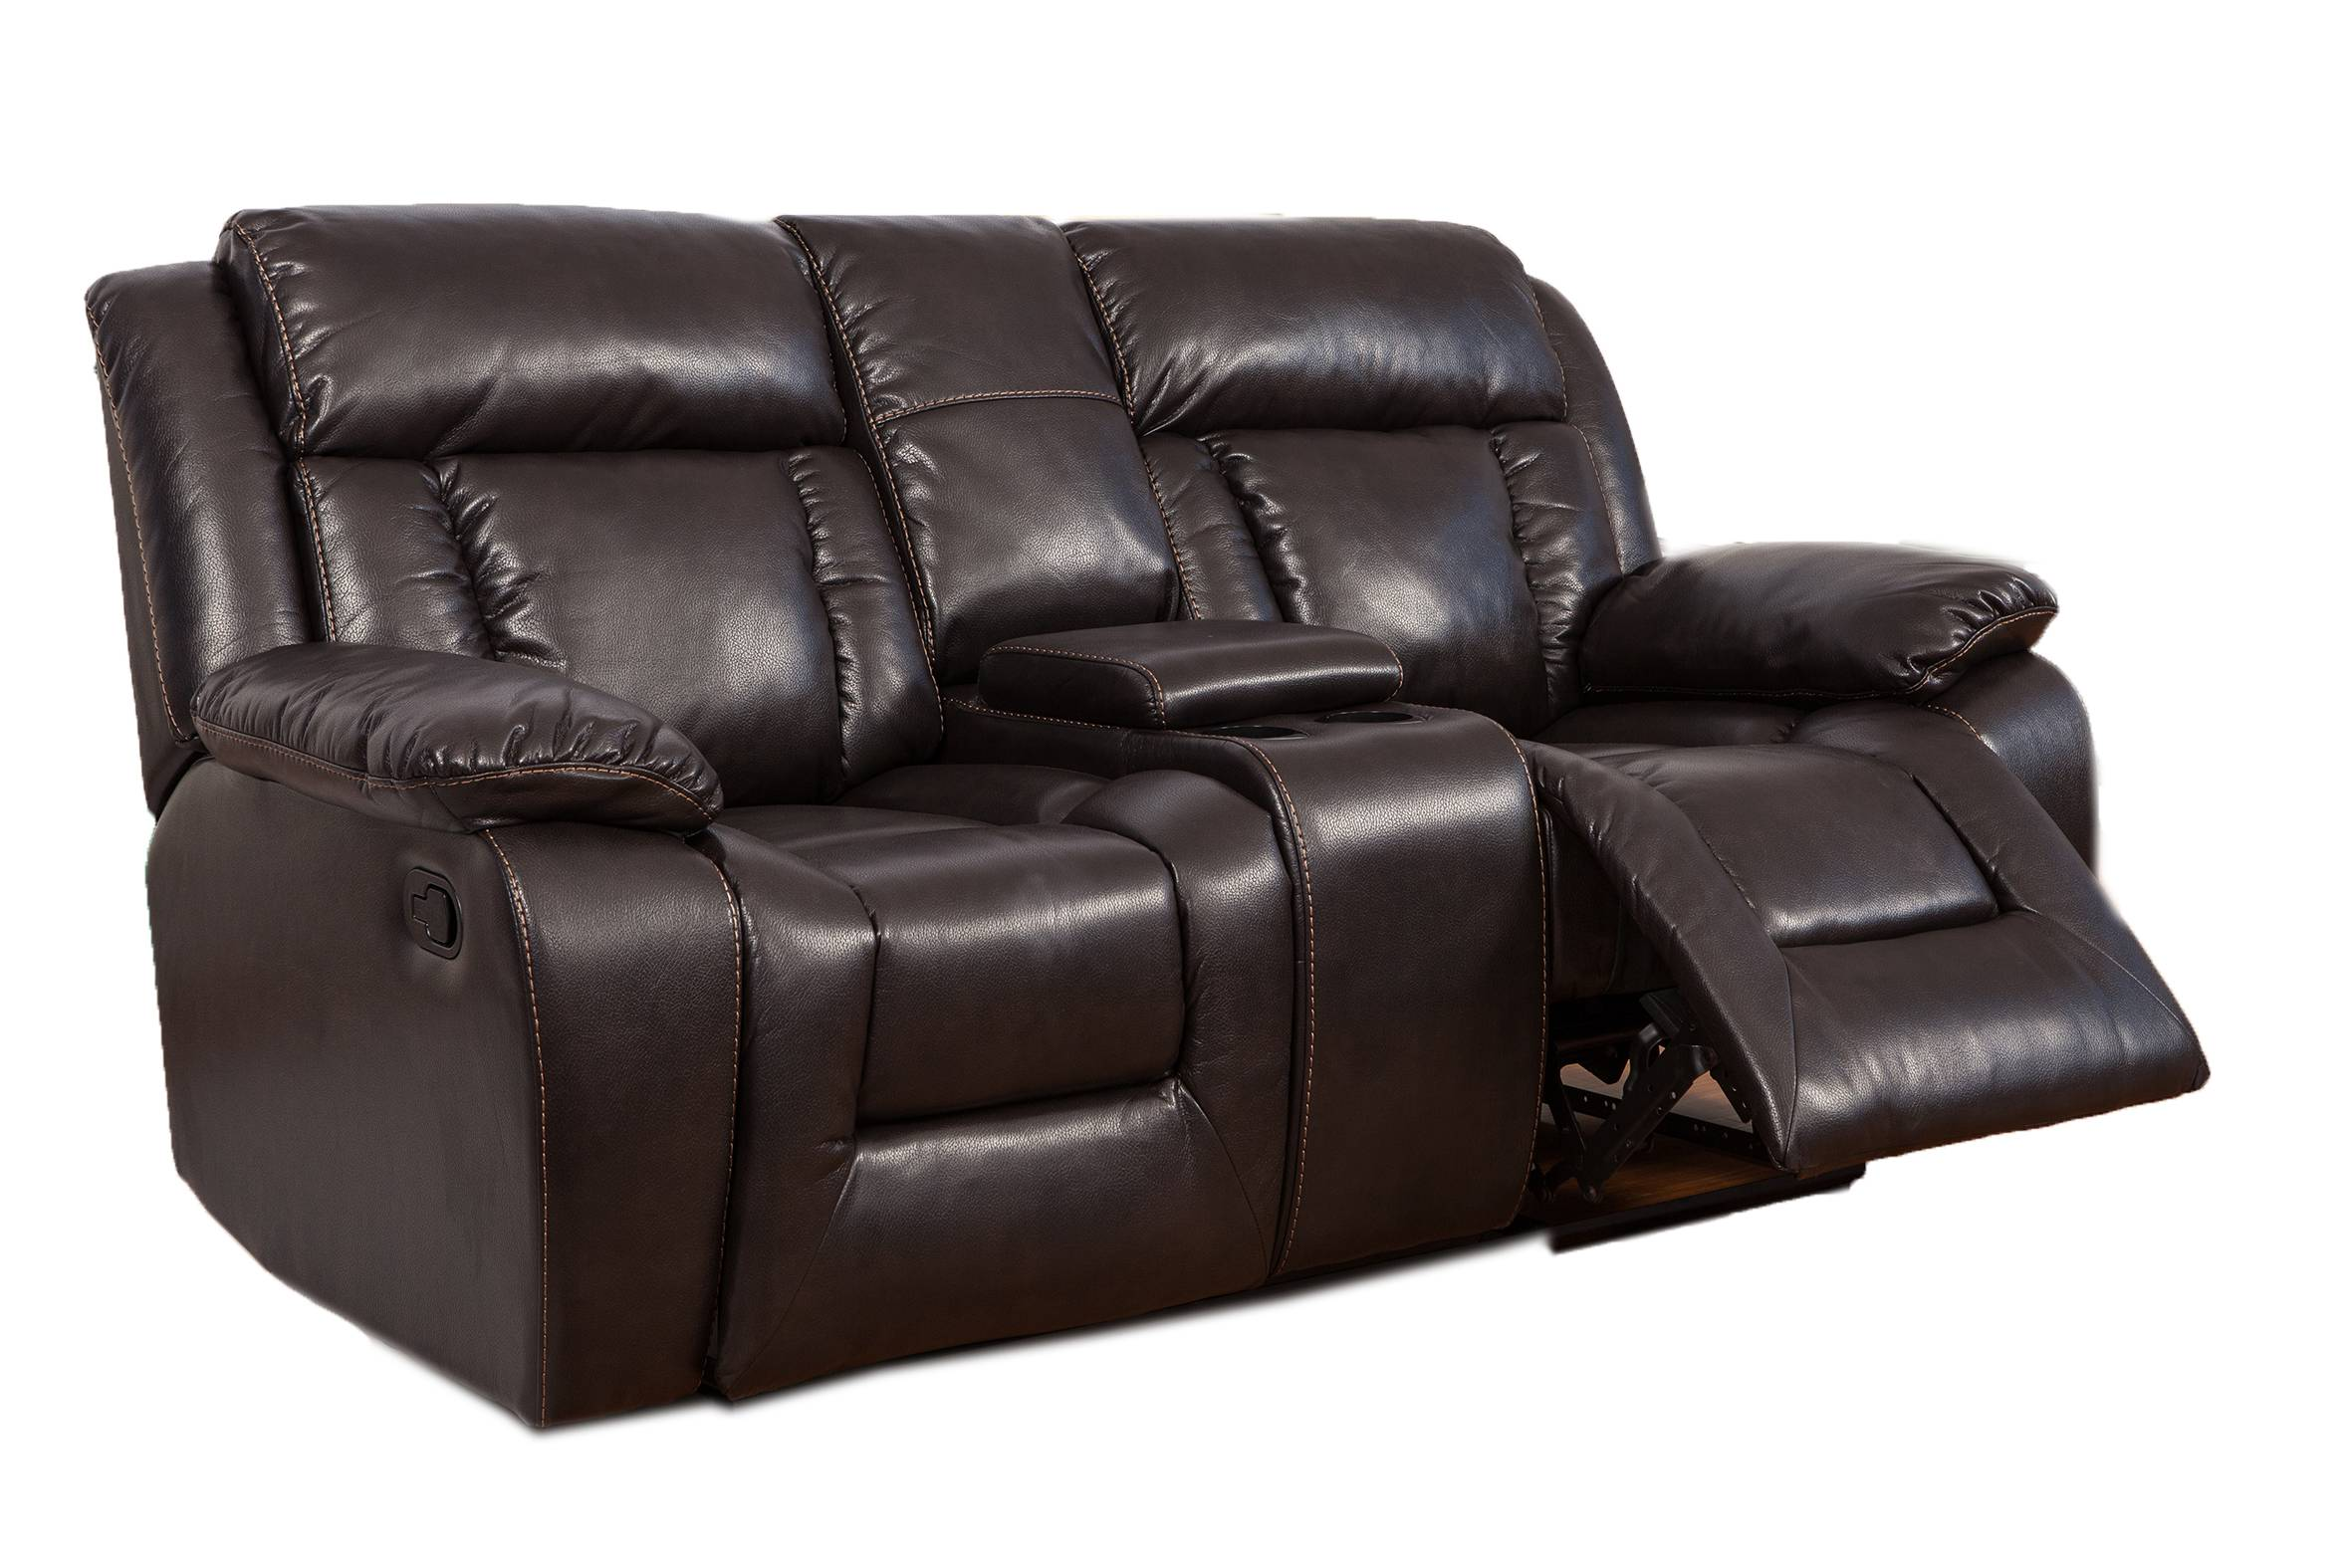 VIP Cinema power electric recliner sofa for living room